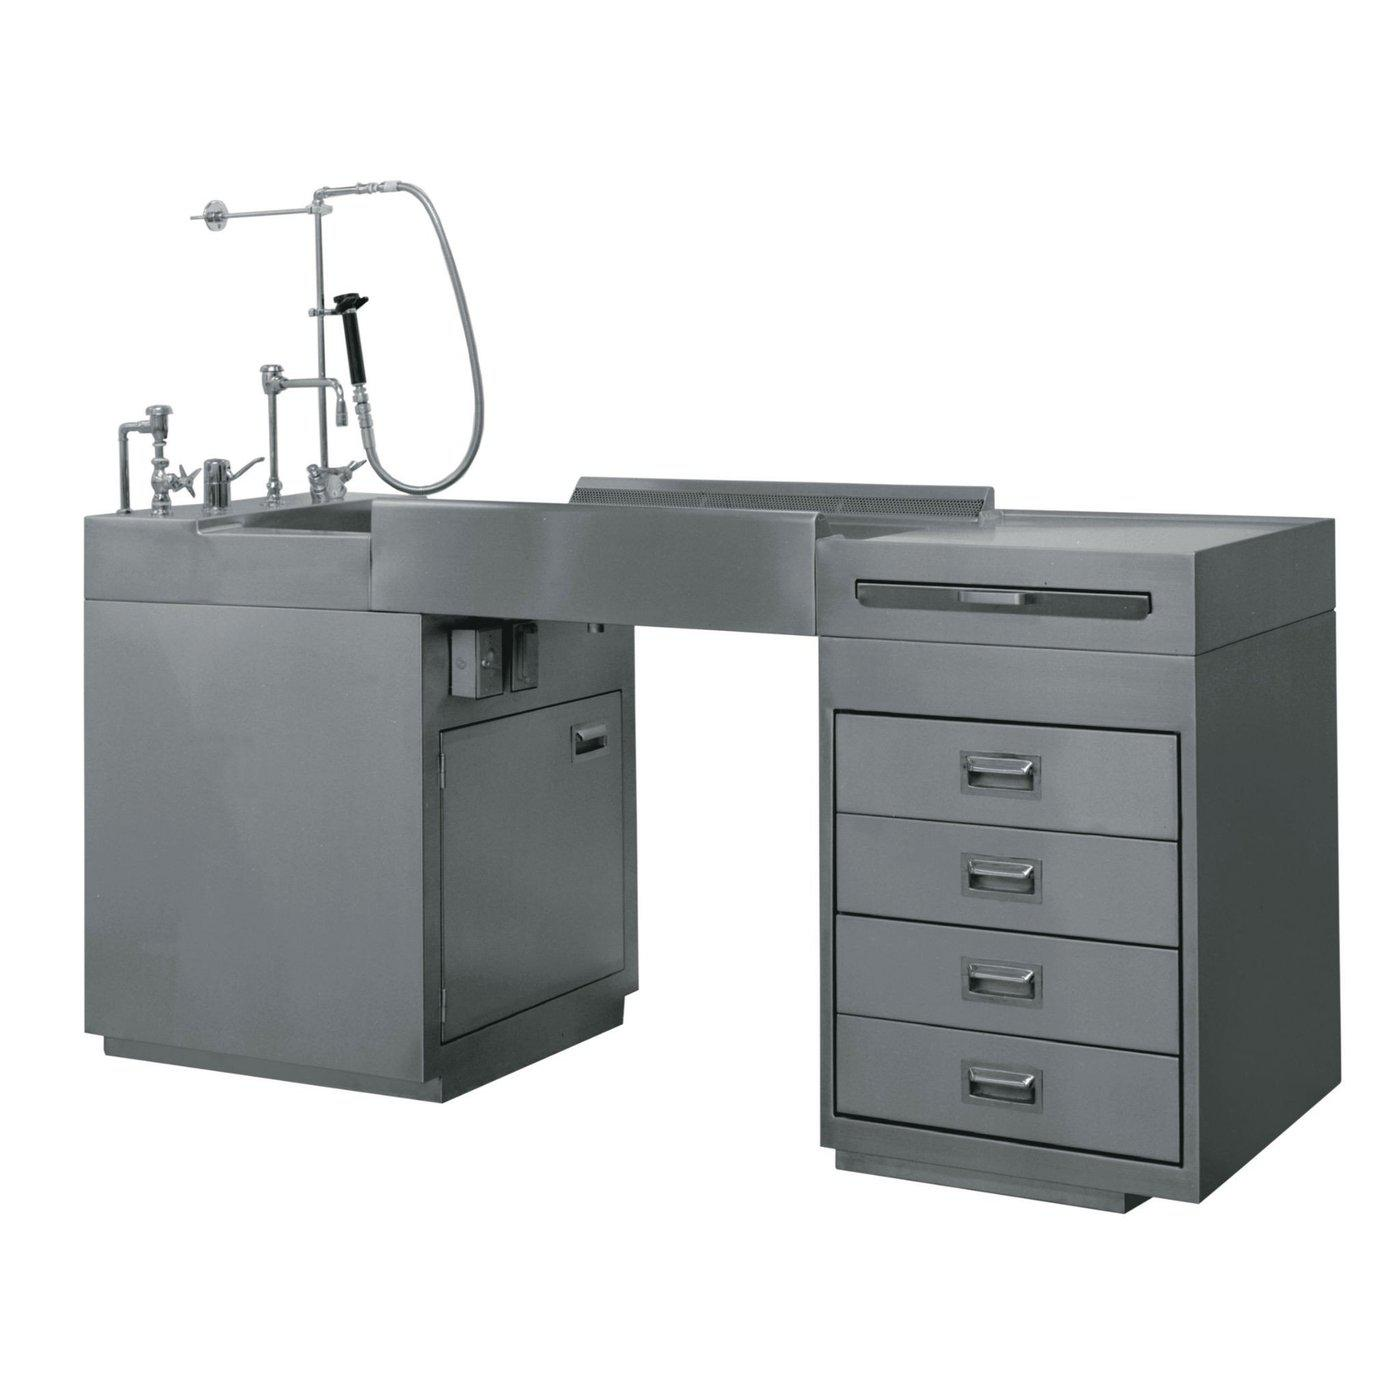 Side Exhaust Pathology Workstation-Pathology Grossing Stations-Mortech Manufacturing Company Inc. Quality Stainless Steel Autopsy, Morgue, Funeral Home, Necropsy, Veterinary / Anatomy, Dissection Equipment and Accessories